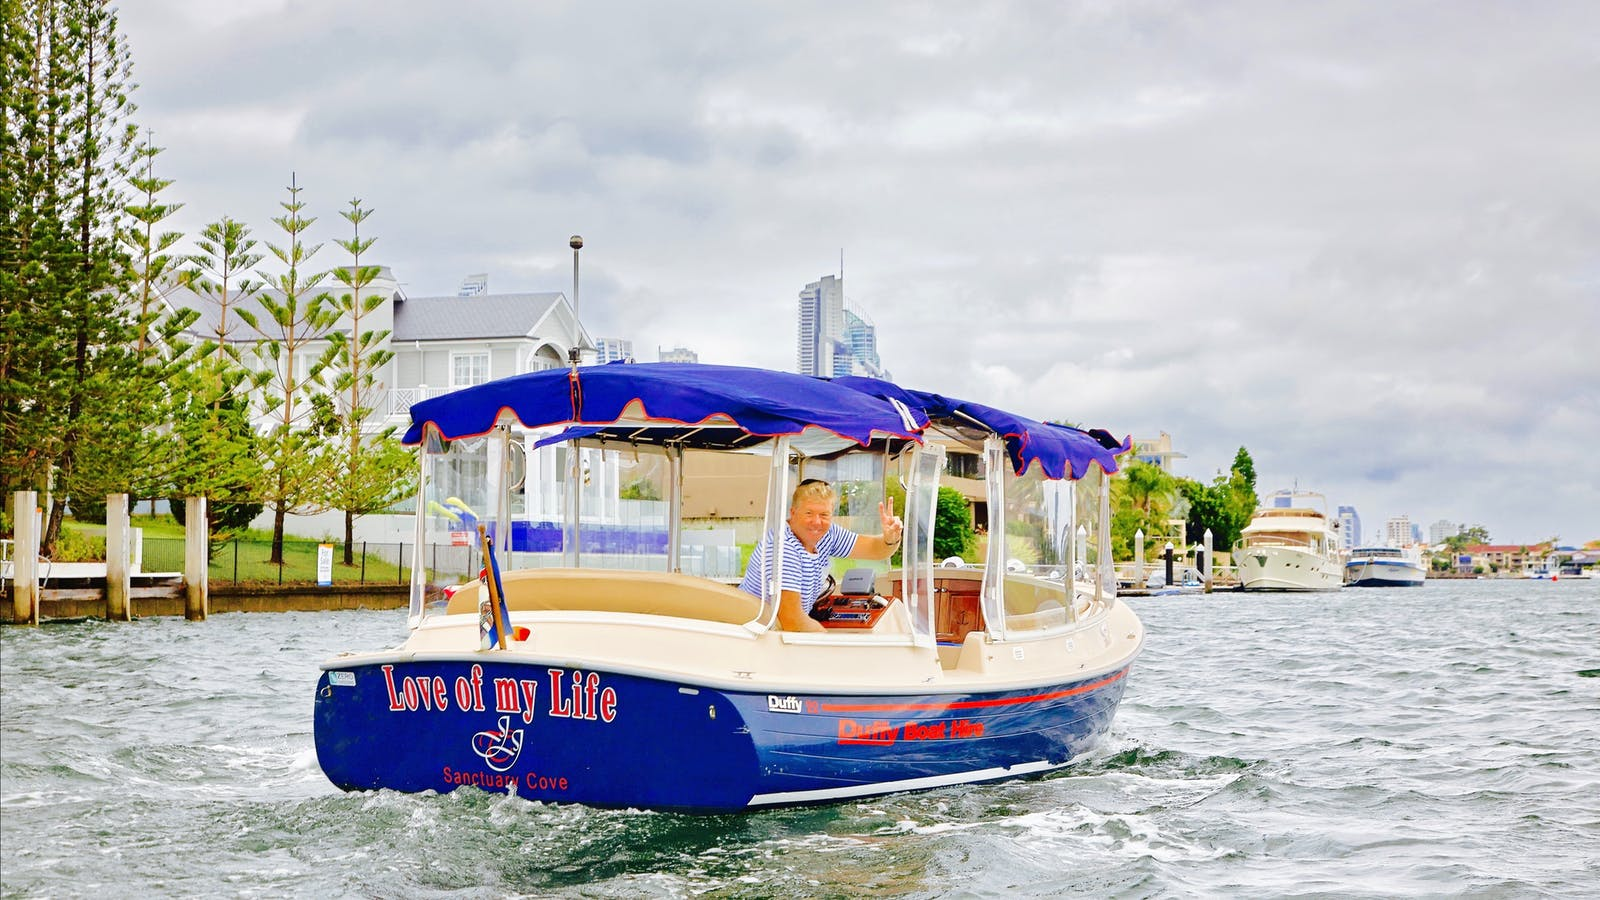 Duffy Boats Gold Coast Limo on the Water